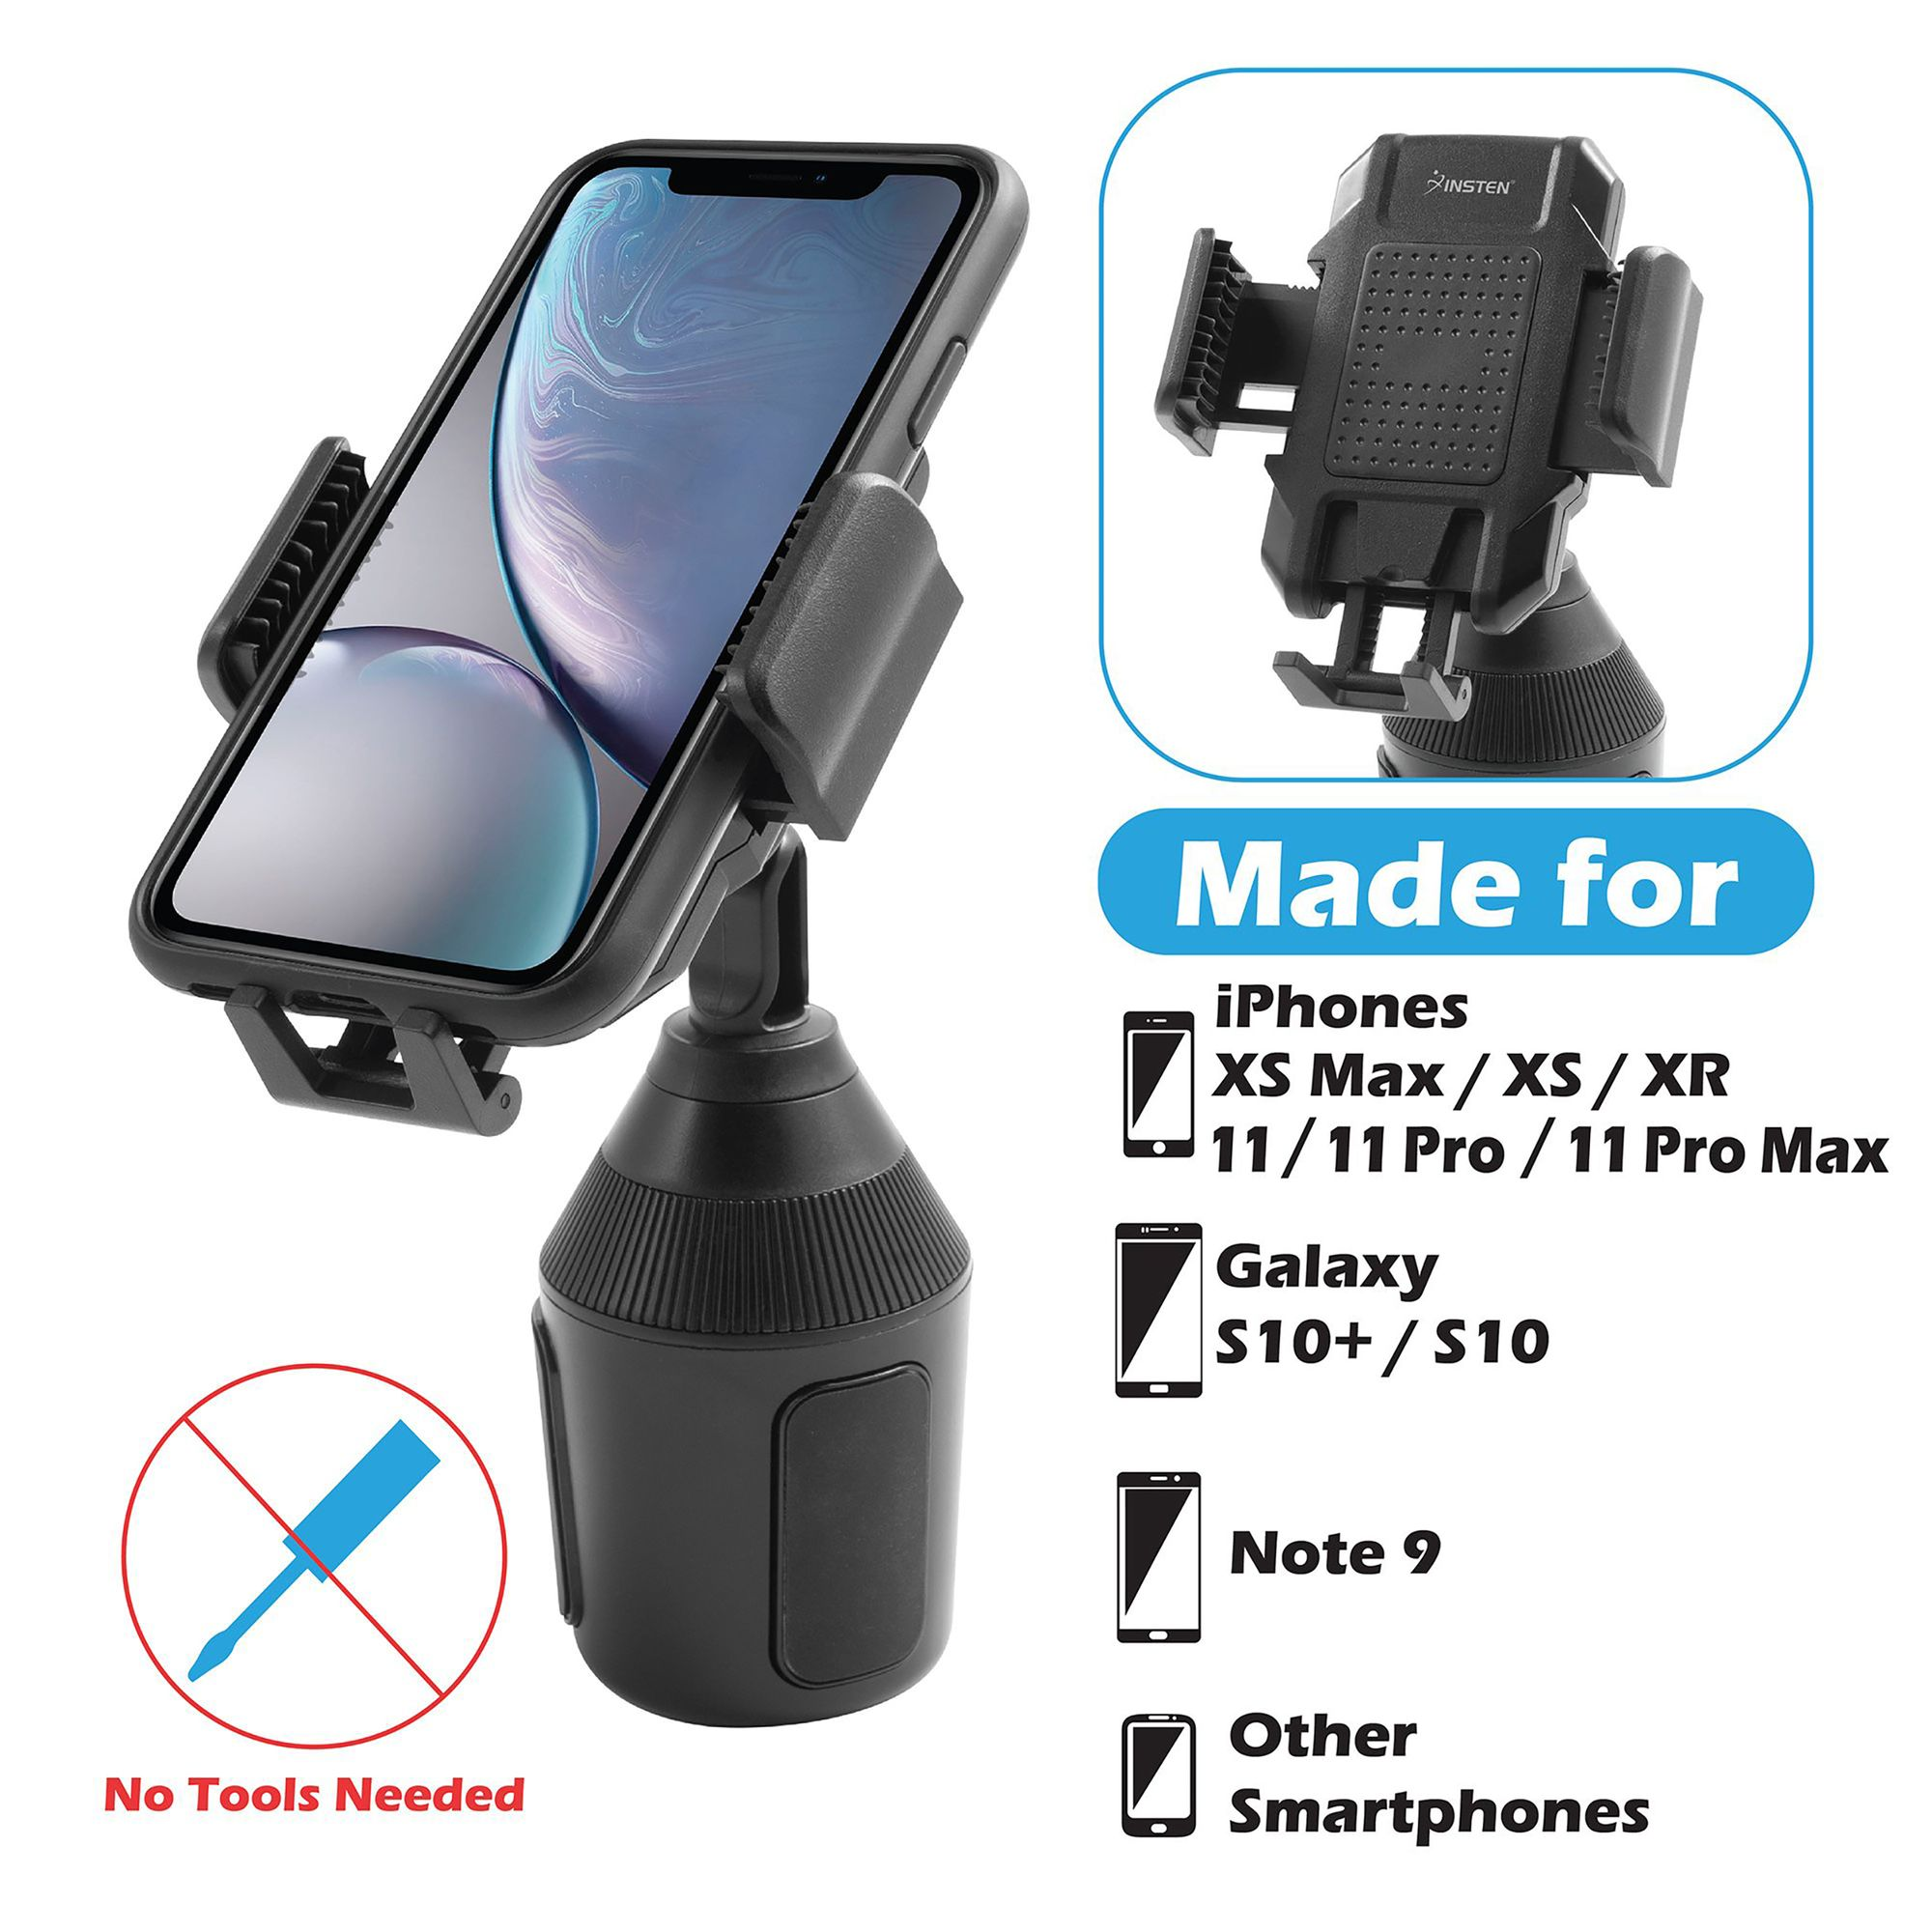 Samsung S10//S10 Plus//S9//S8 Edge//Note9 Huawei etc. Car Cup Holder Phone Mount CTYBB Cup Holder Cradle Car Mount with Adjustable Neck for Cell Phones iPhone 11 Pro//iPhone 11//11//XR//XS//8//7 Plus//6s